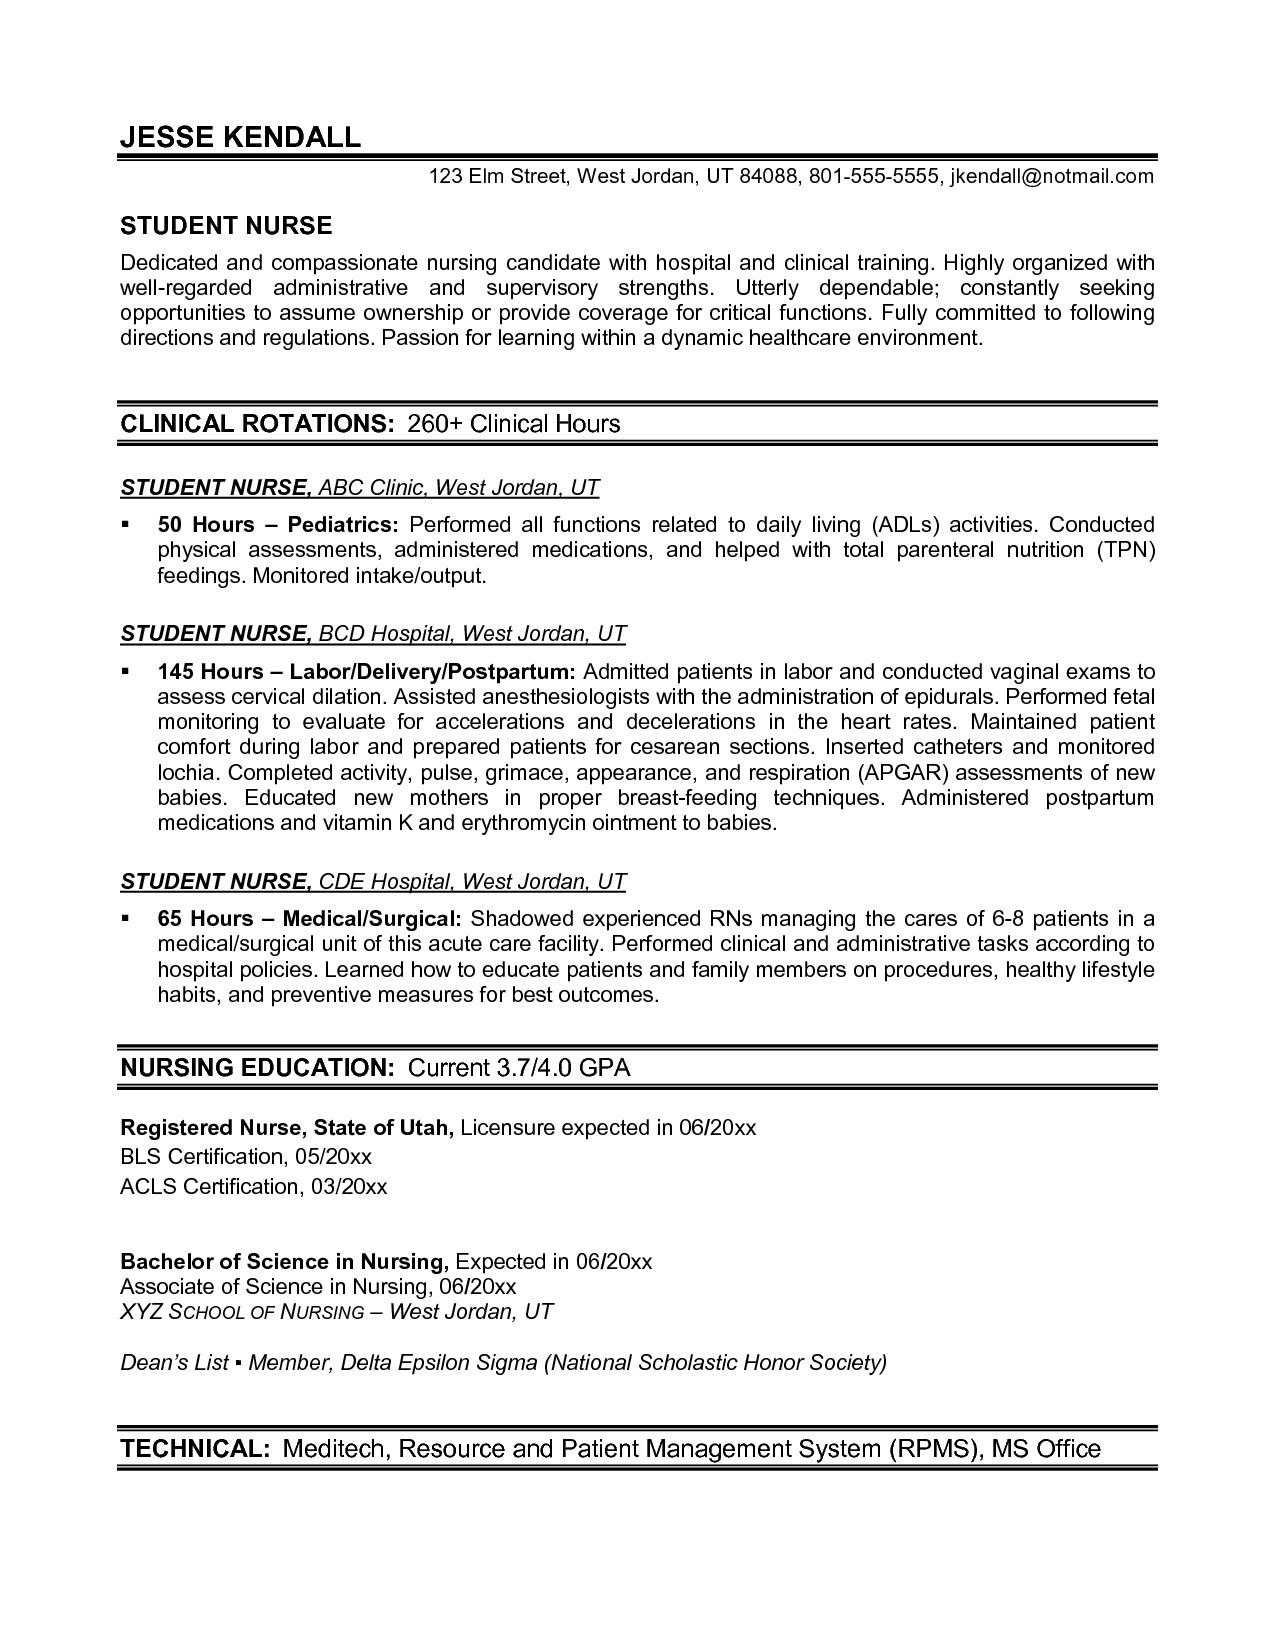 Sample Nursing Student Resume Clinical Experience - Nursing Student Resume Clinical Experience